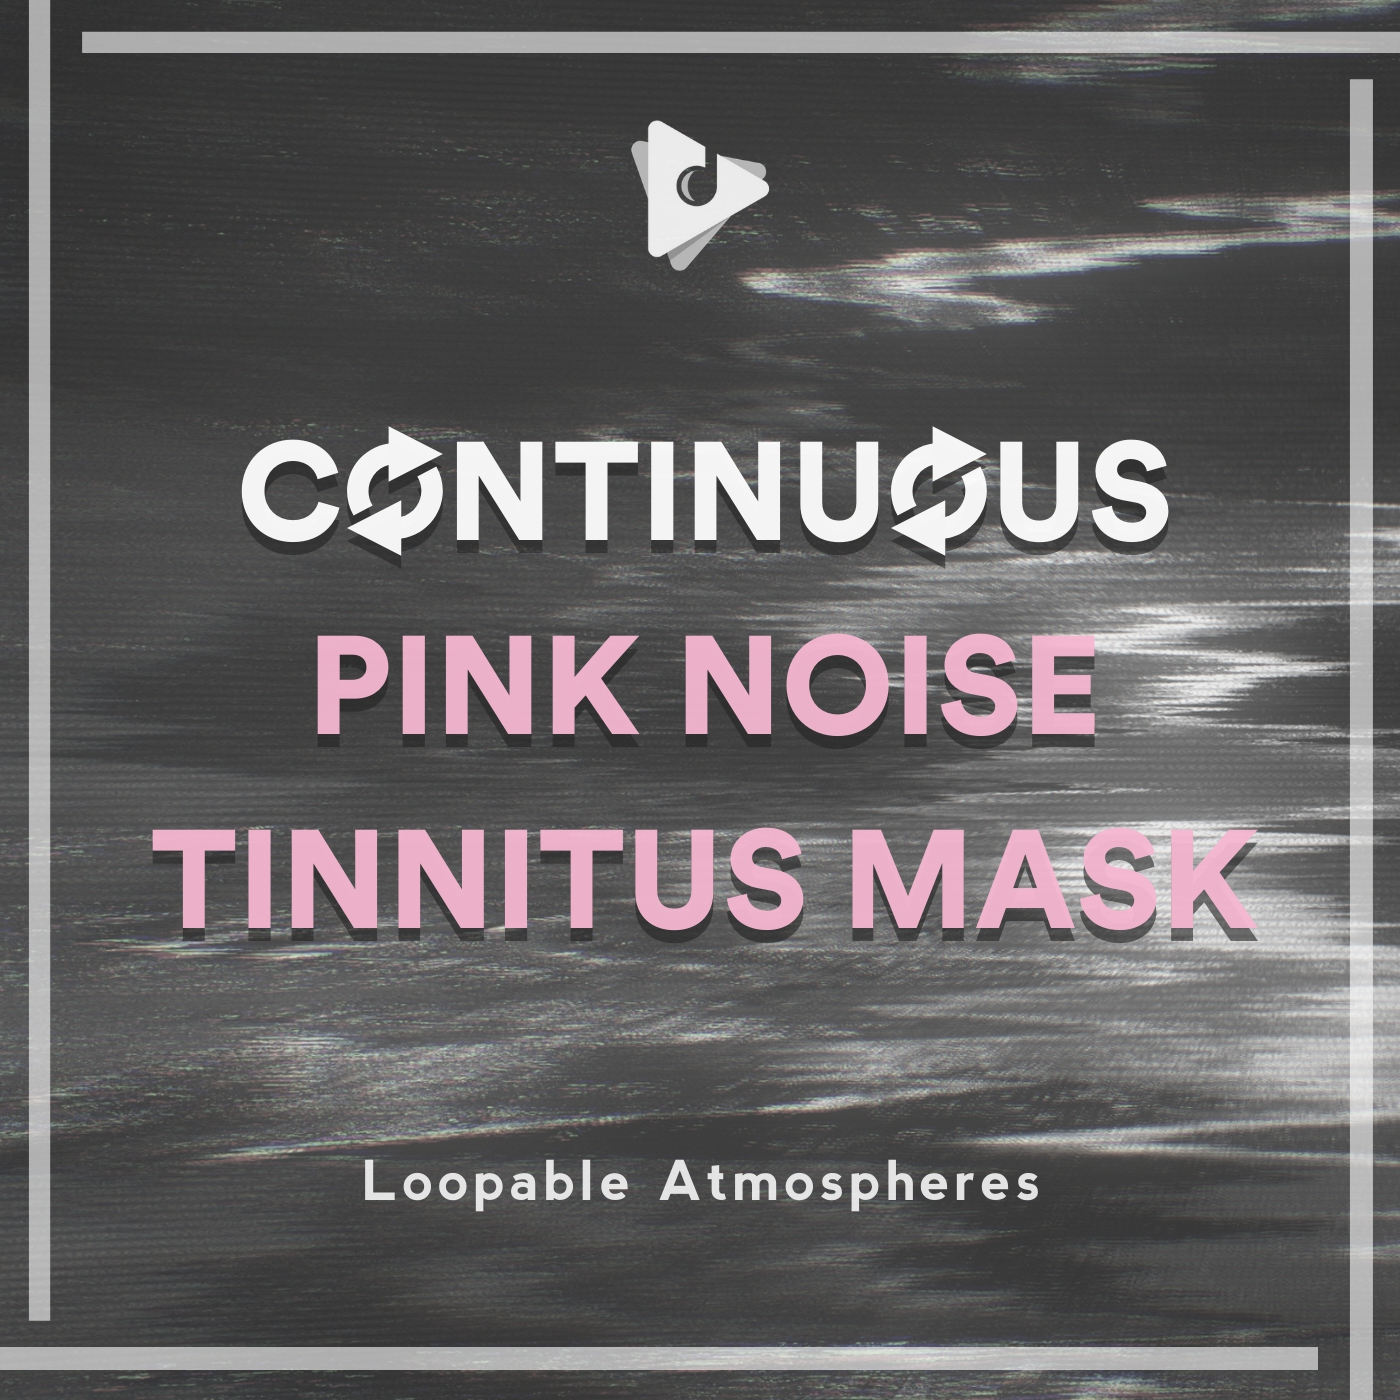 Continuous Pink Noise Tinnitus Mask